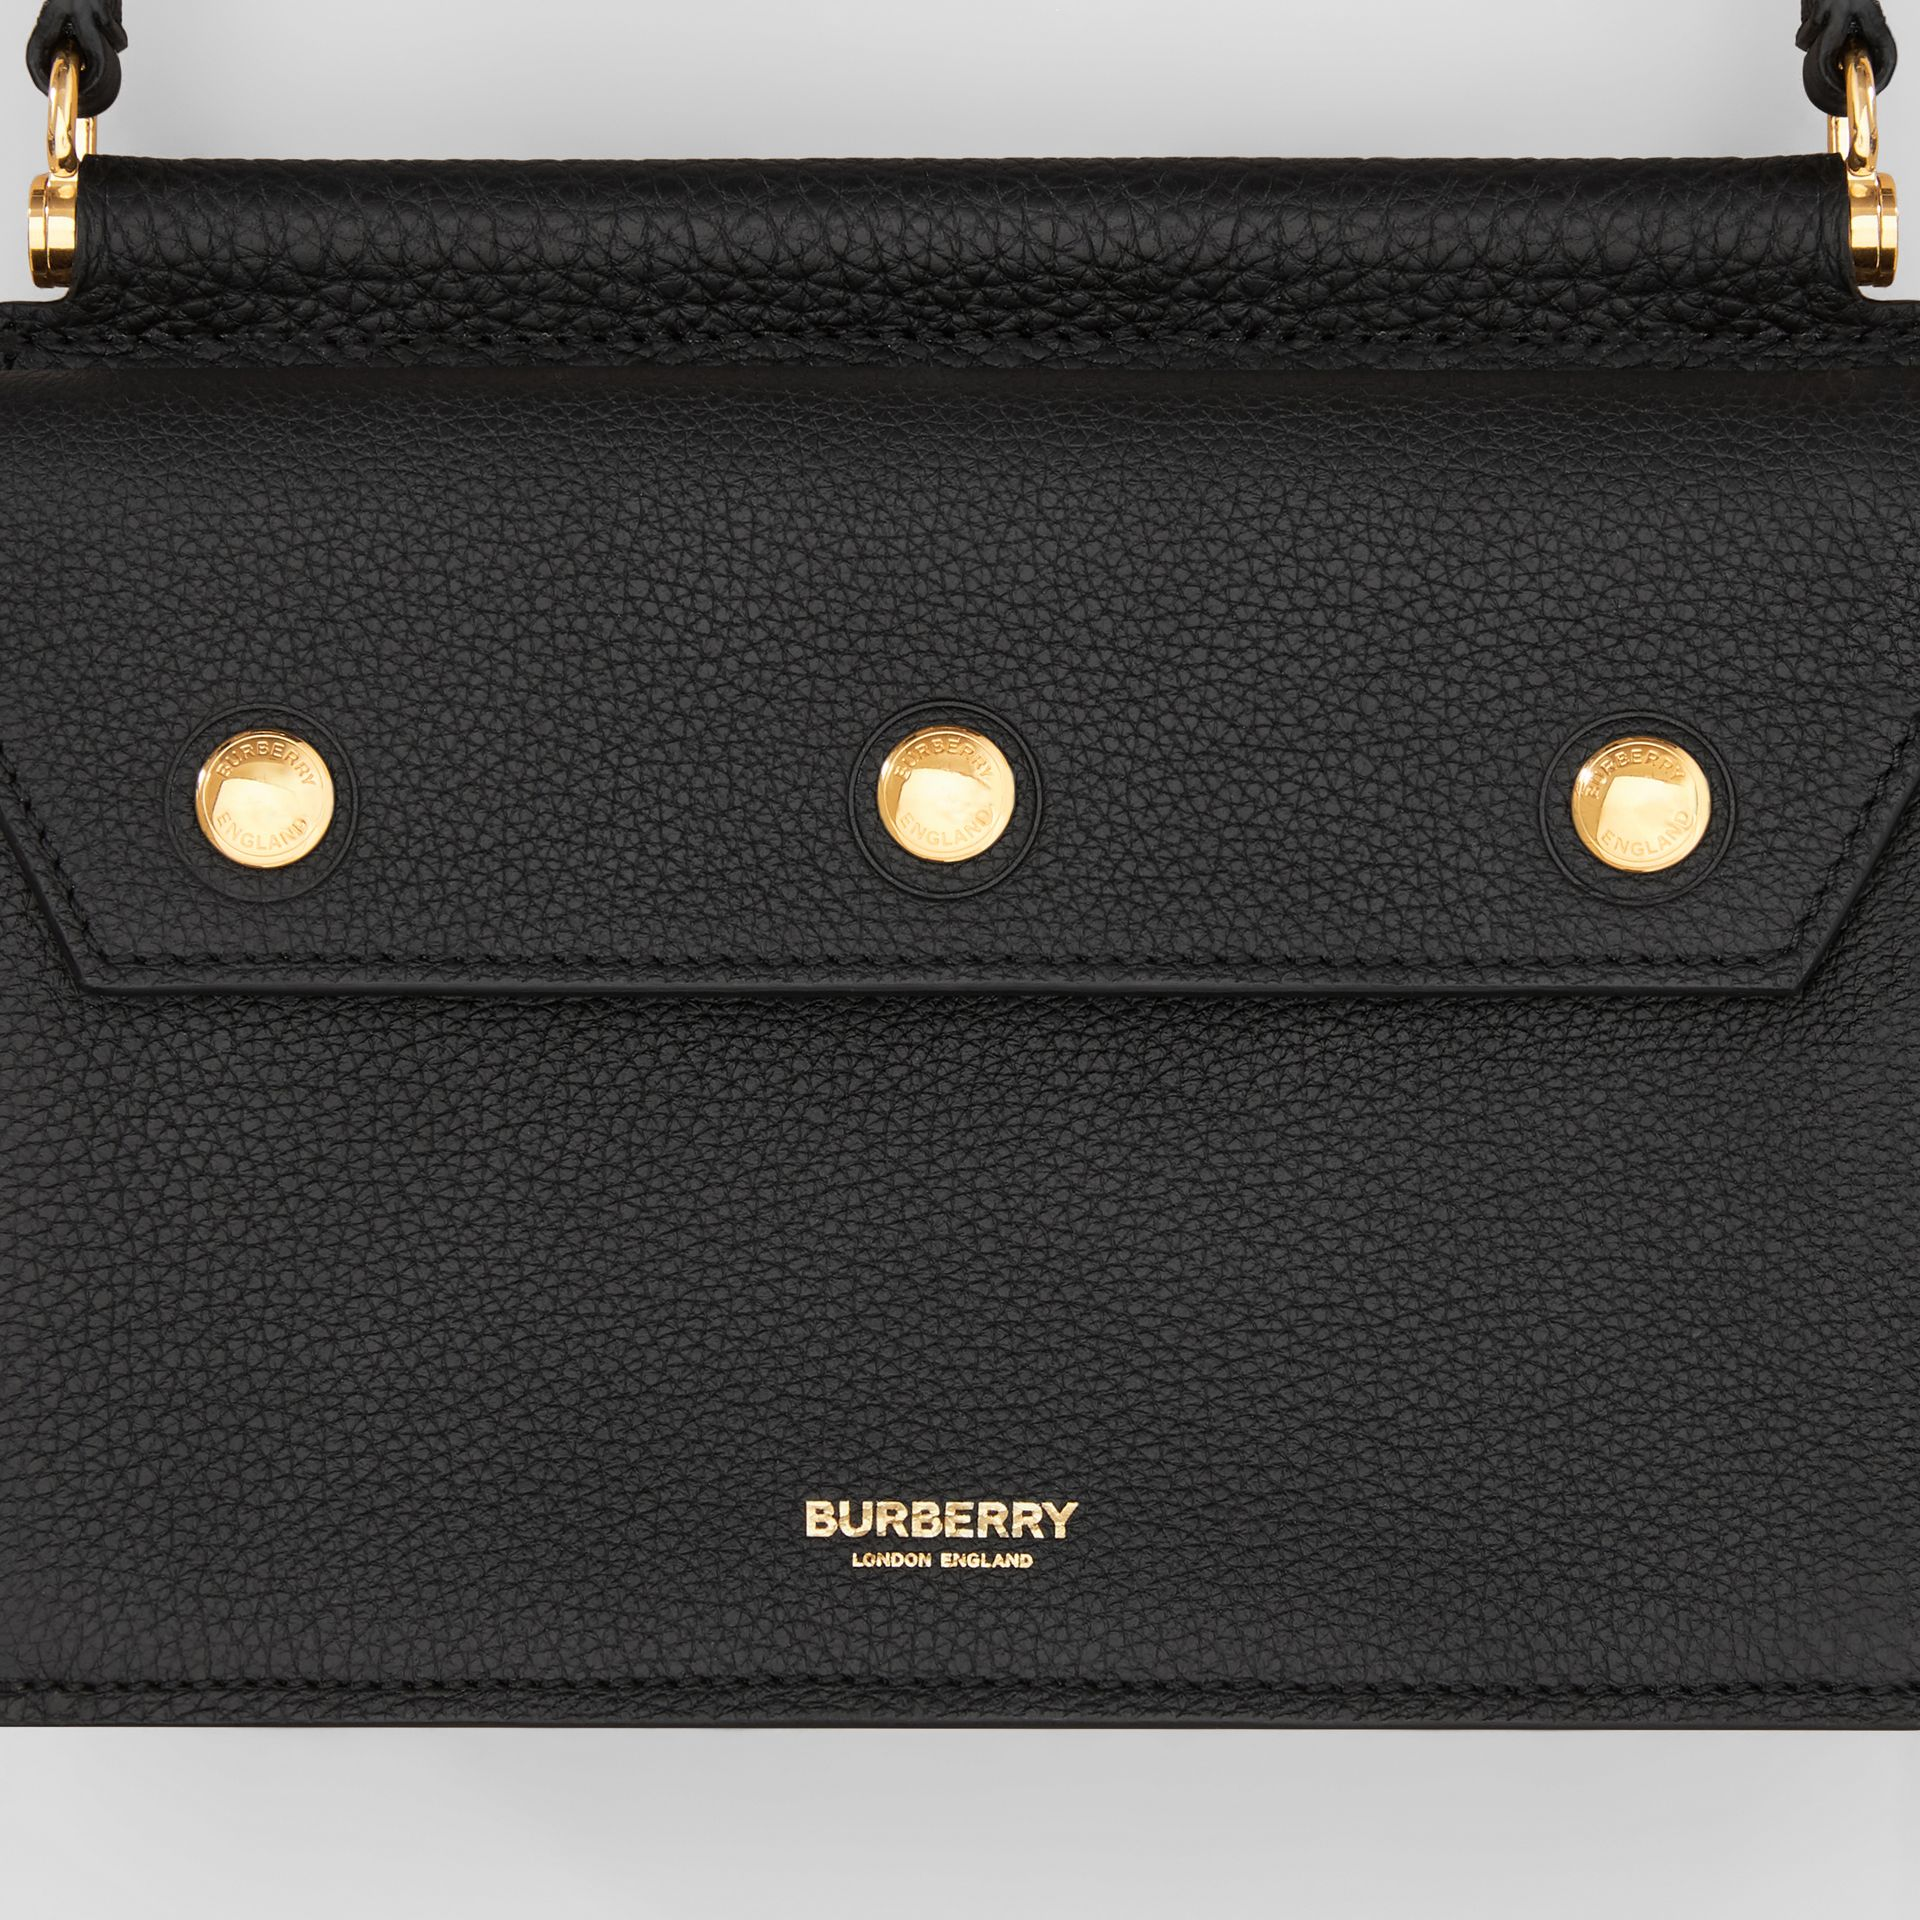 Mini Leather Title Bag in Black - Women | Burberry Hong Kong S.A.R. - gallery image 1